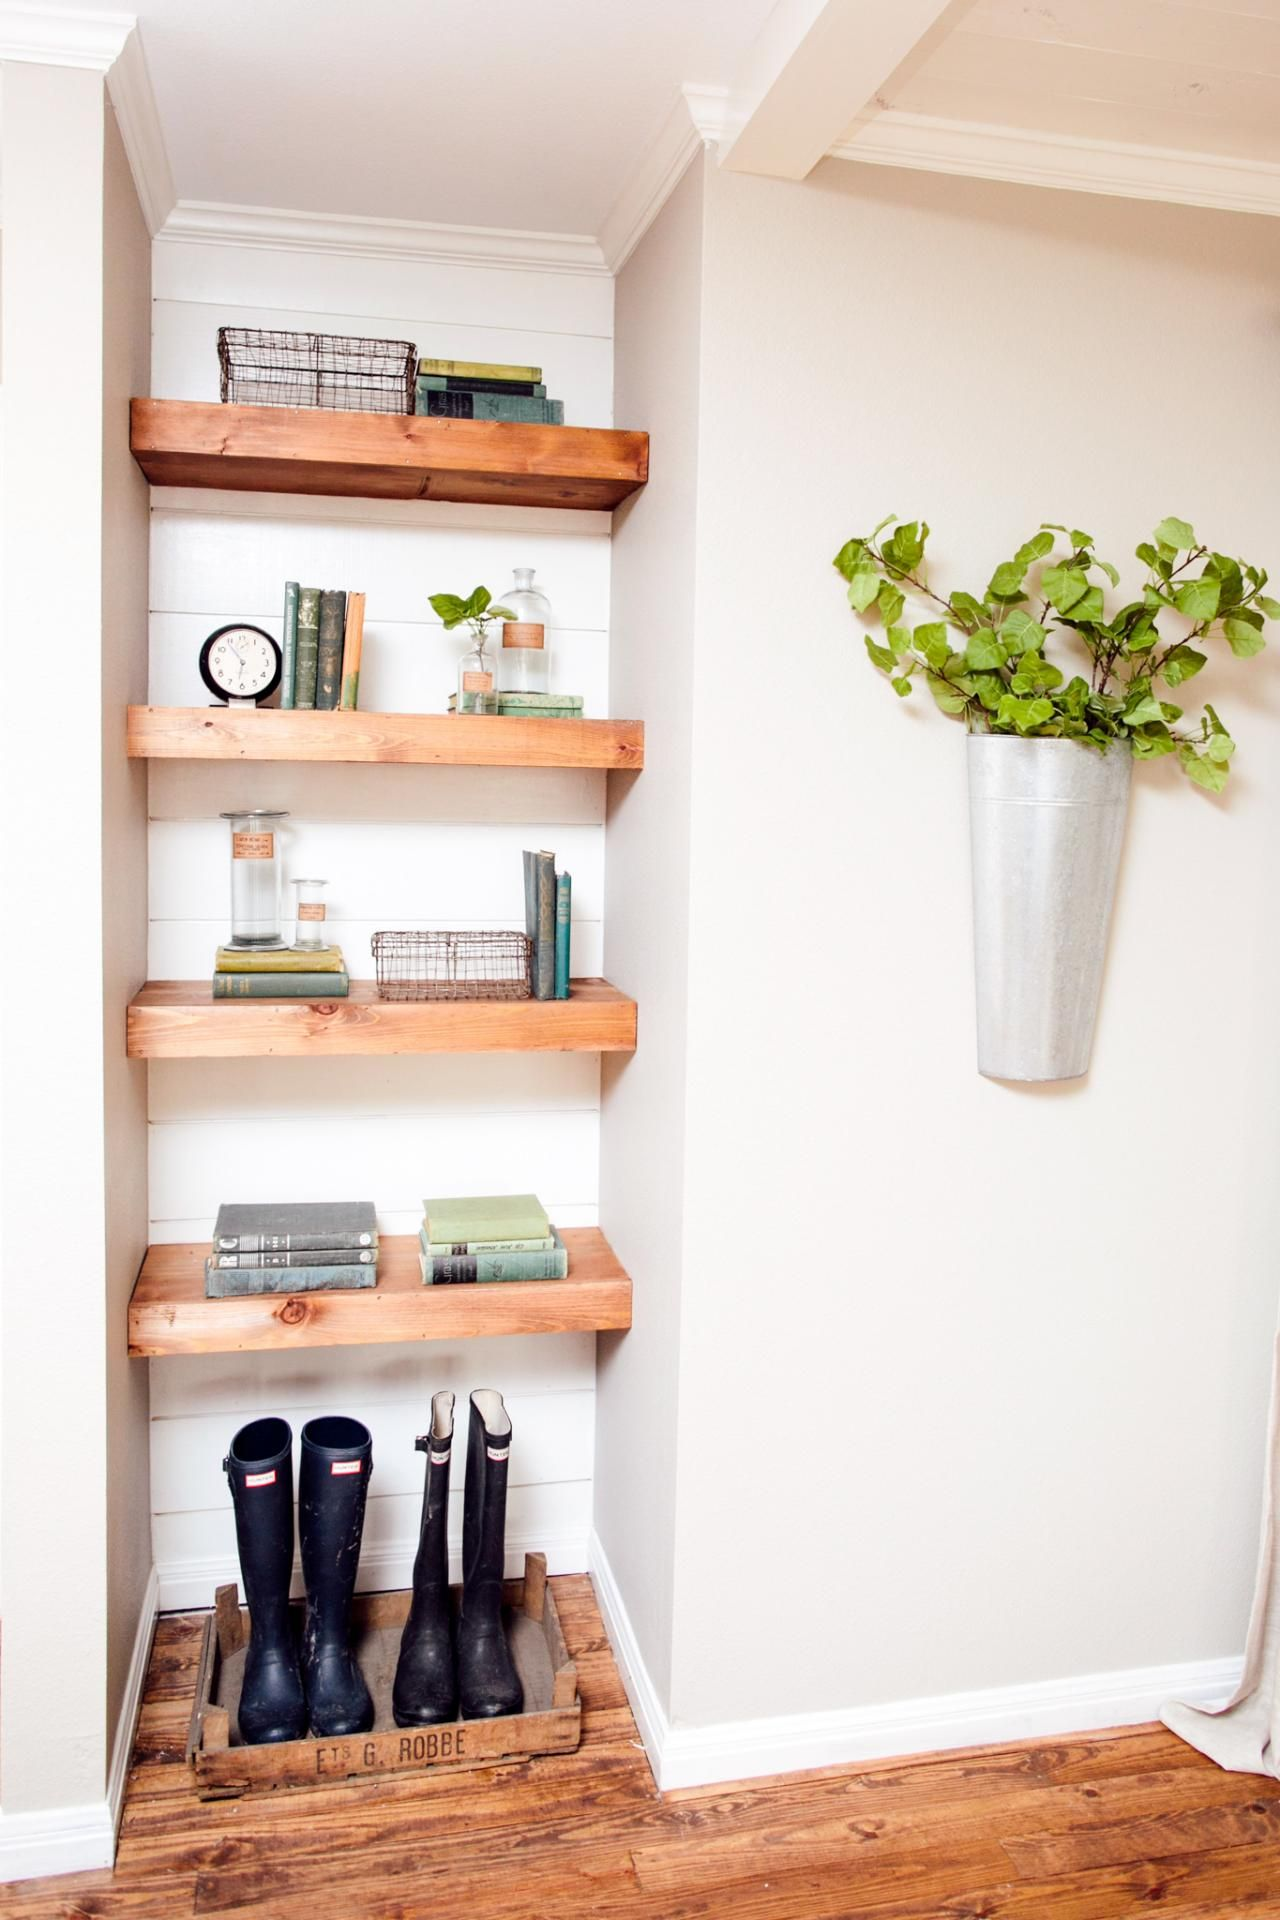 For A More Contemporary Look Chip And Joanna Gaines Paired Painted Shiplap Siding With Thick Streamlined Wood Shelves In This Built Shelving Unit